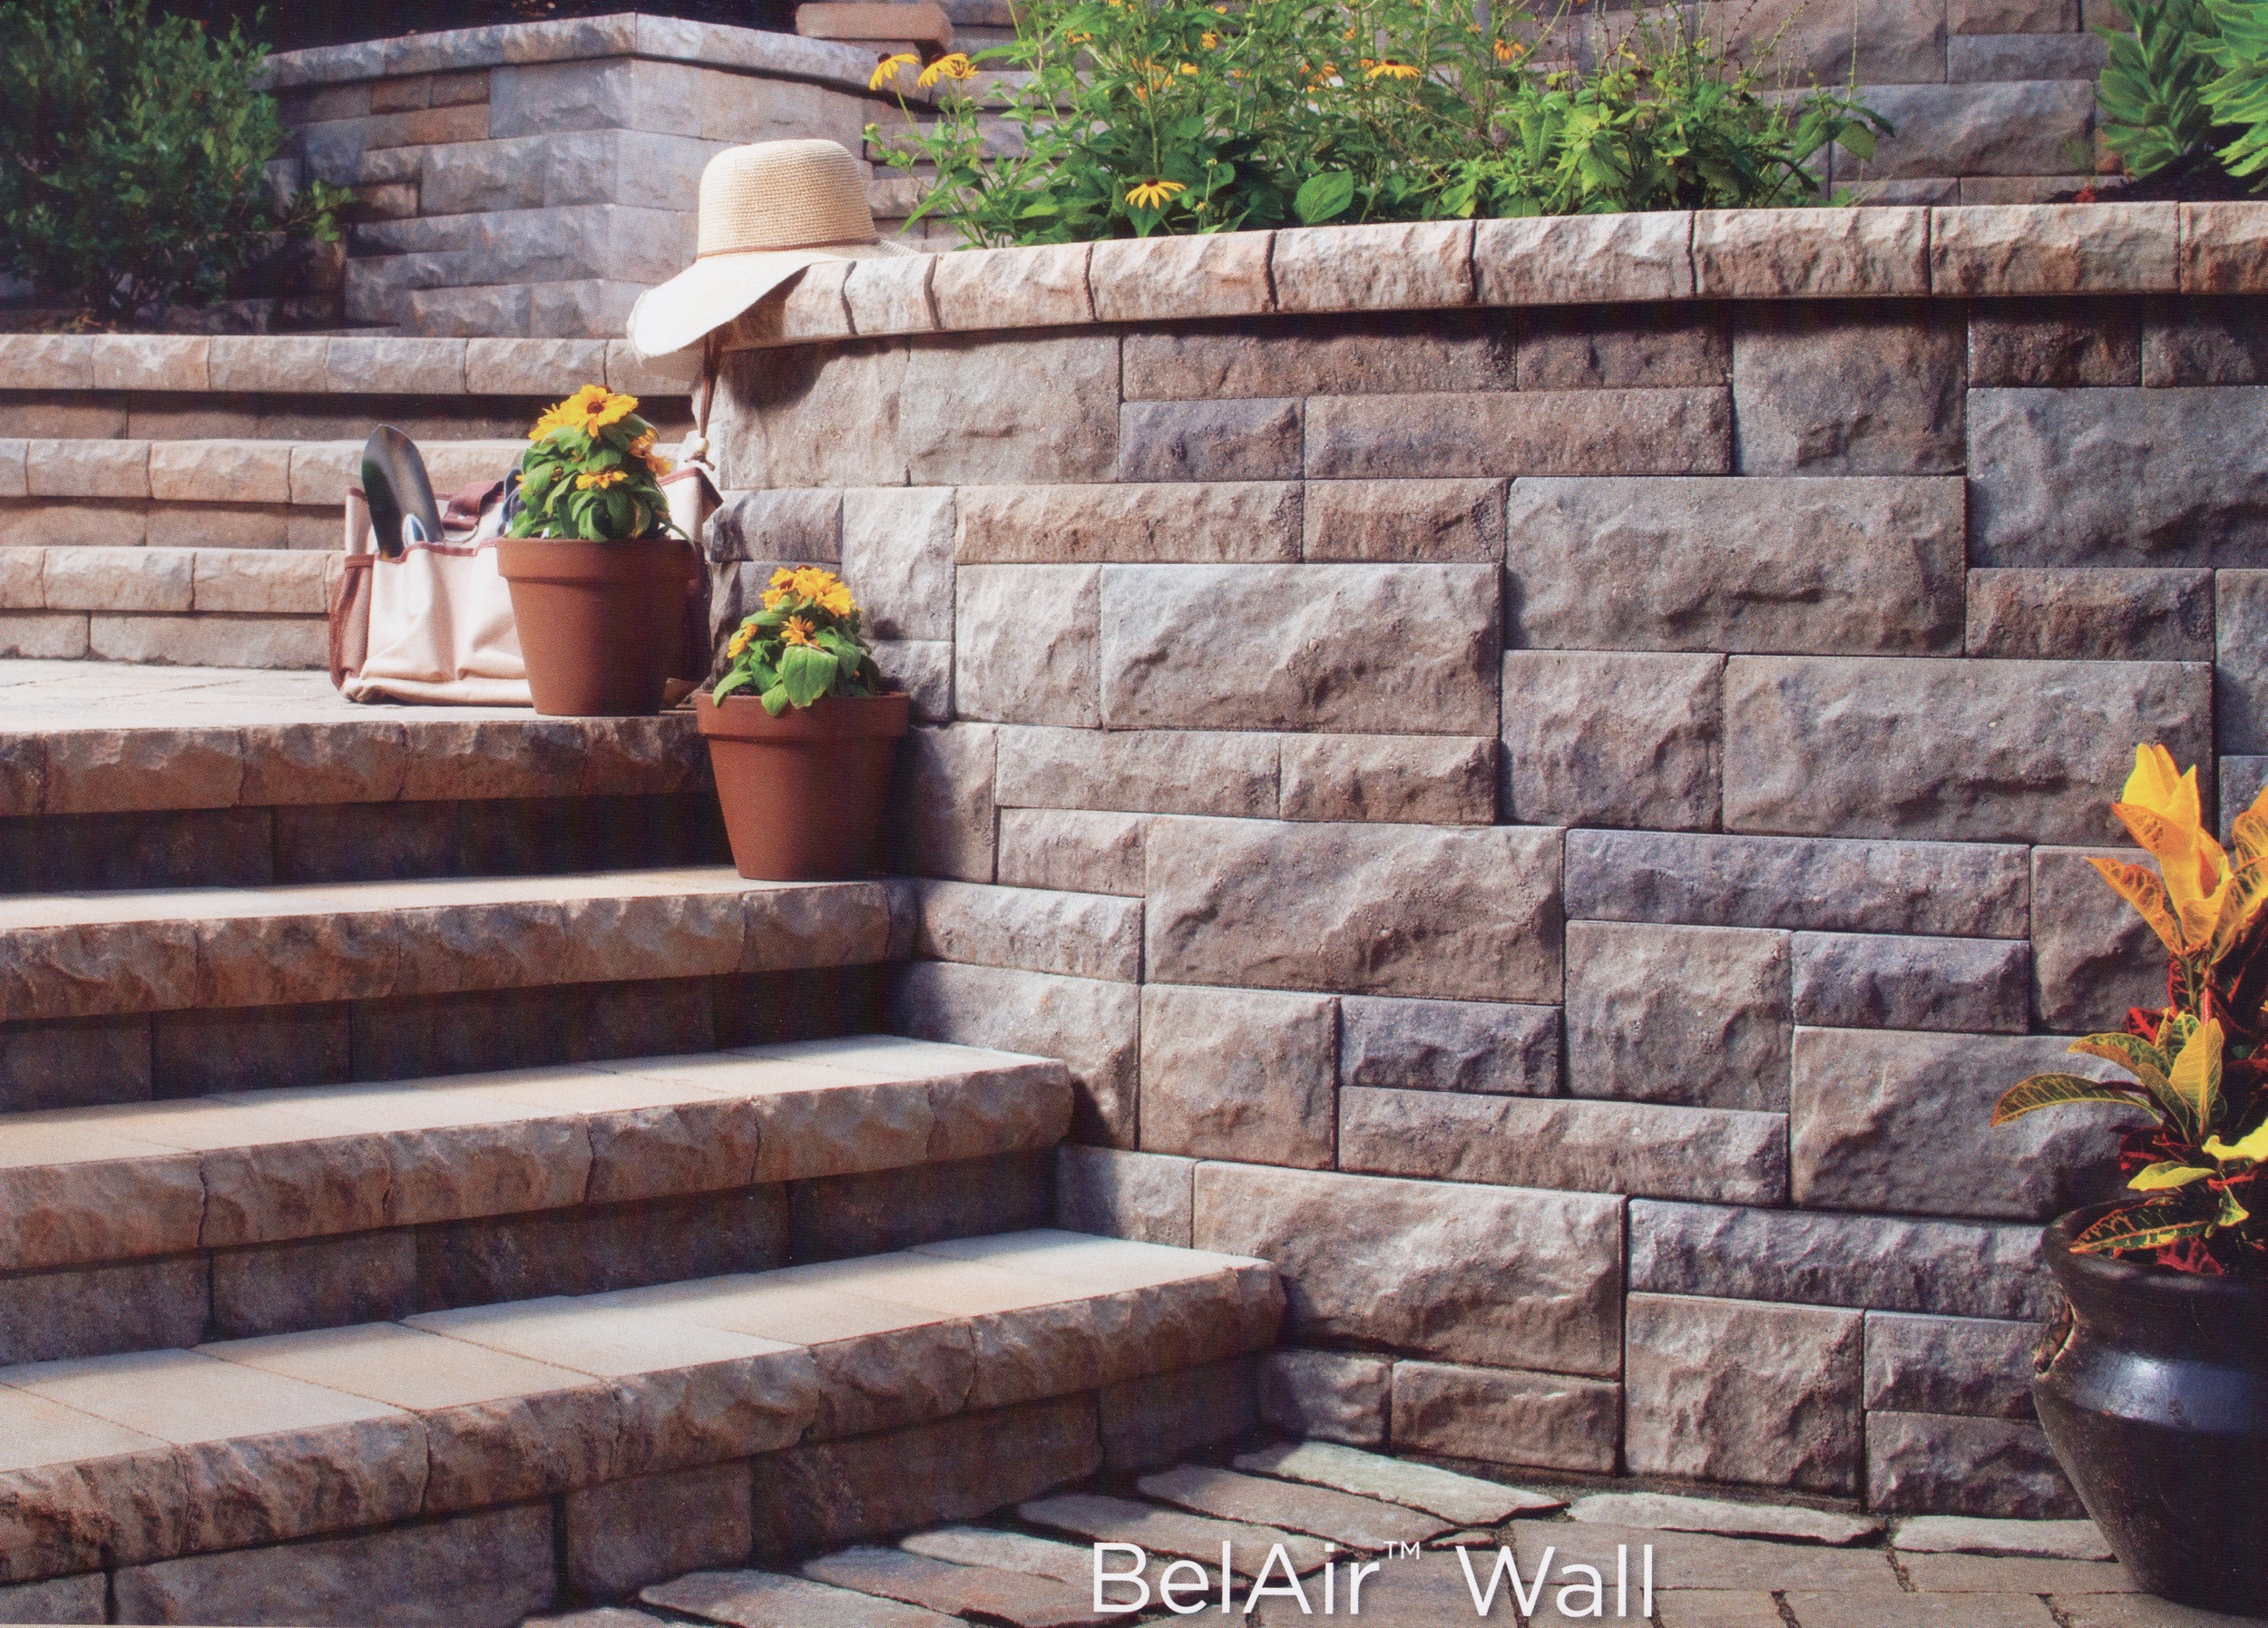 Belair wall & steps 1.jpeg